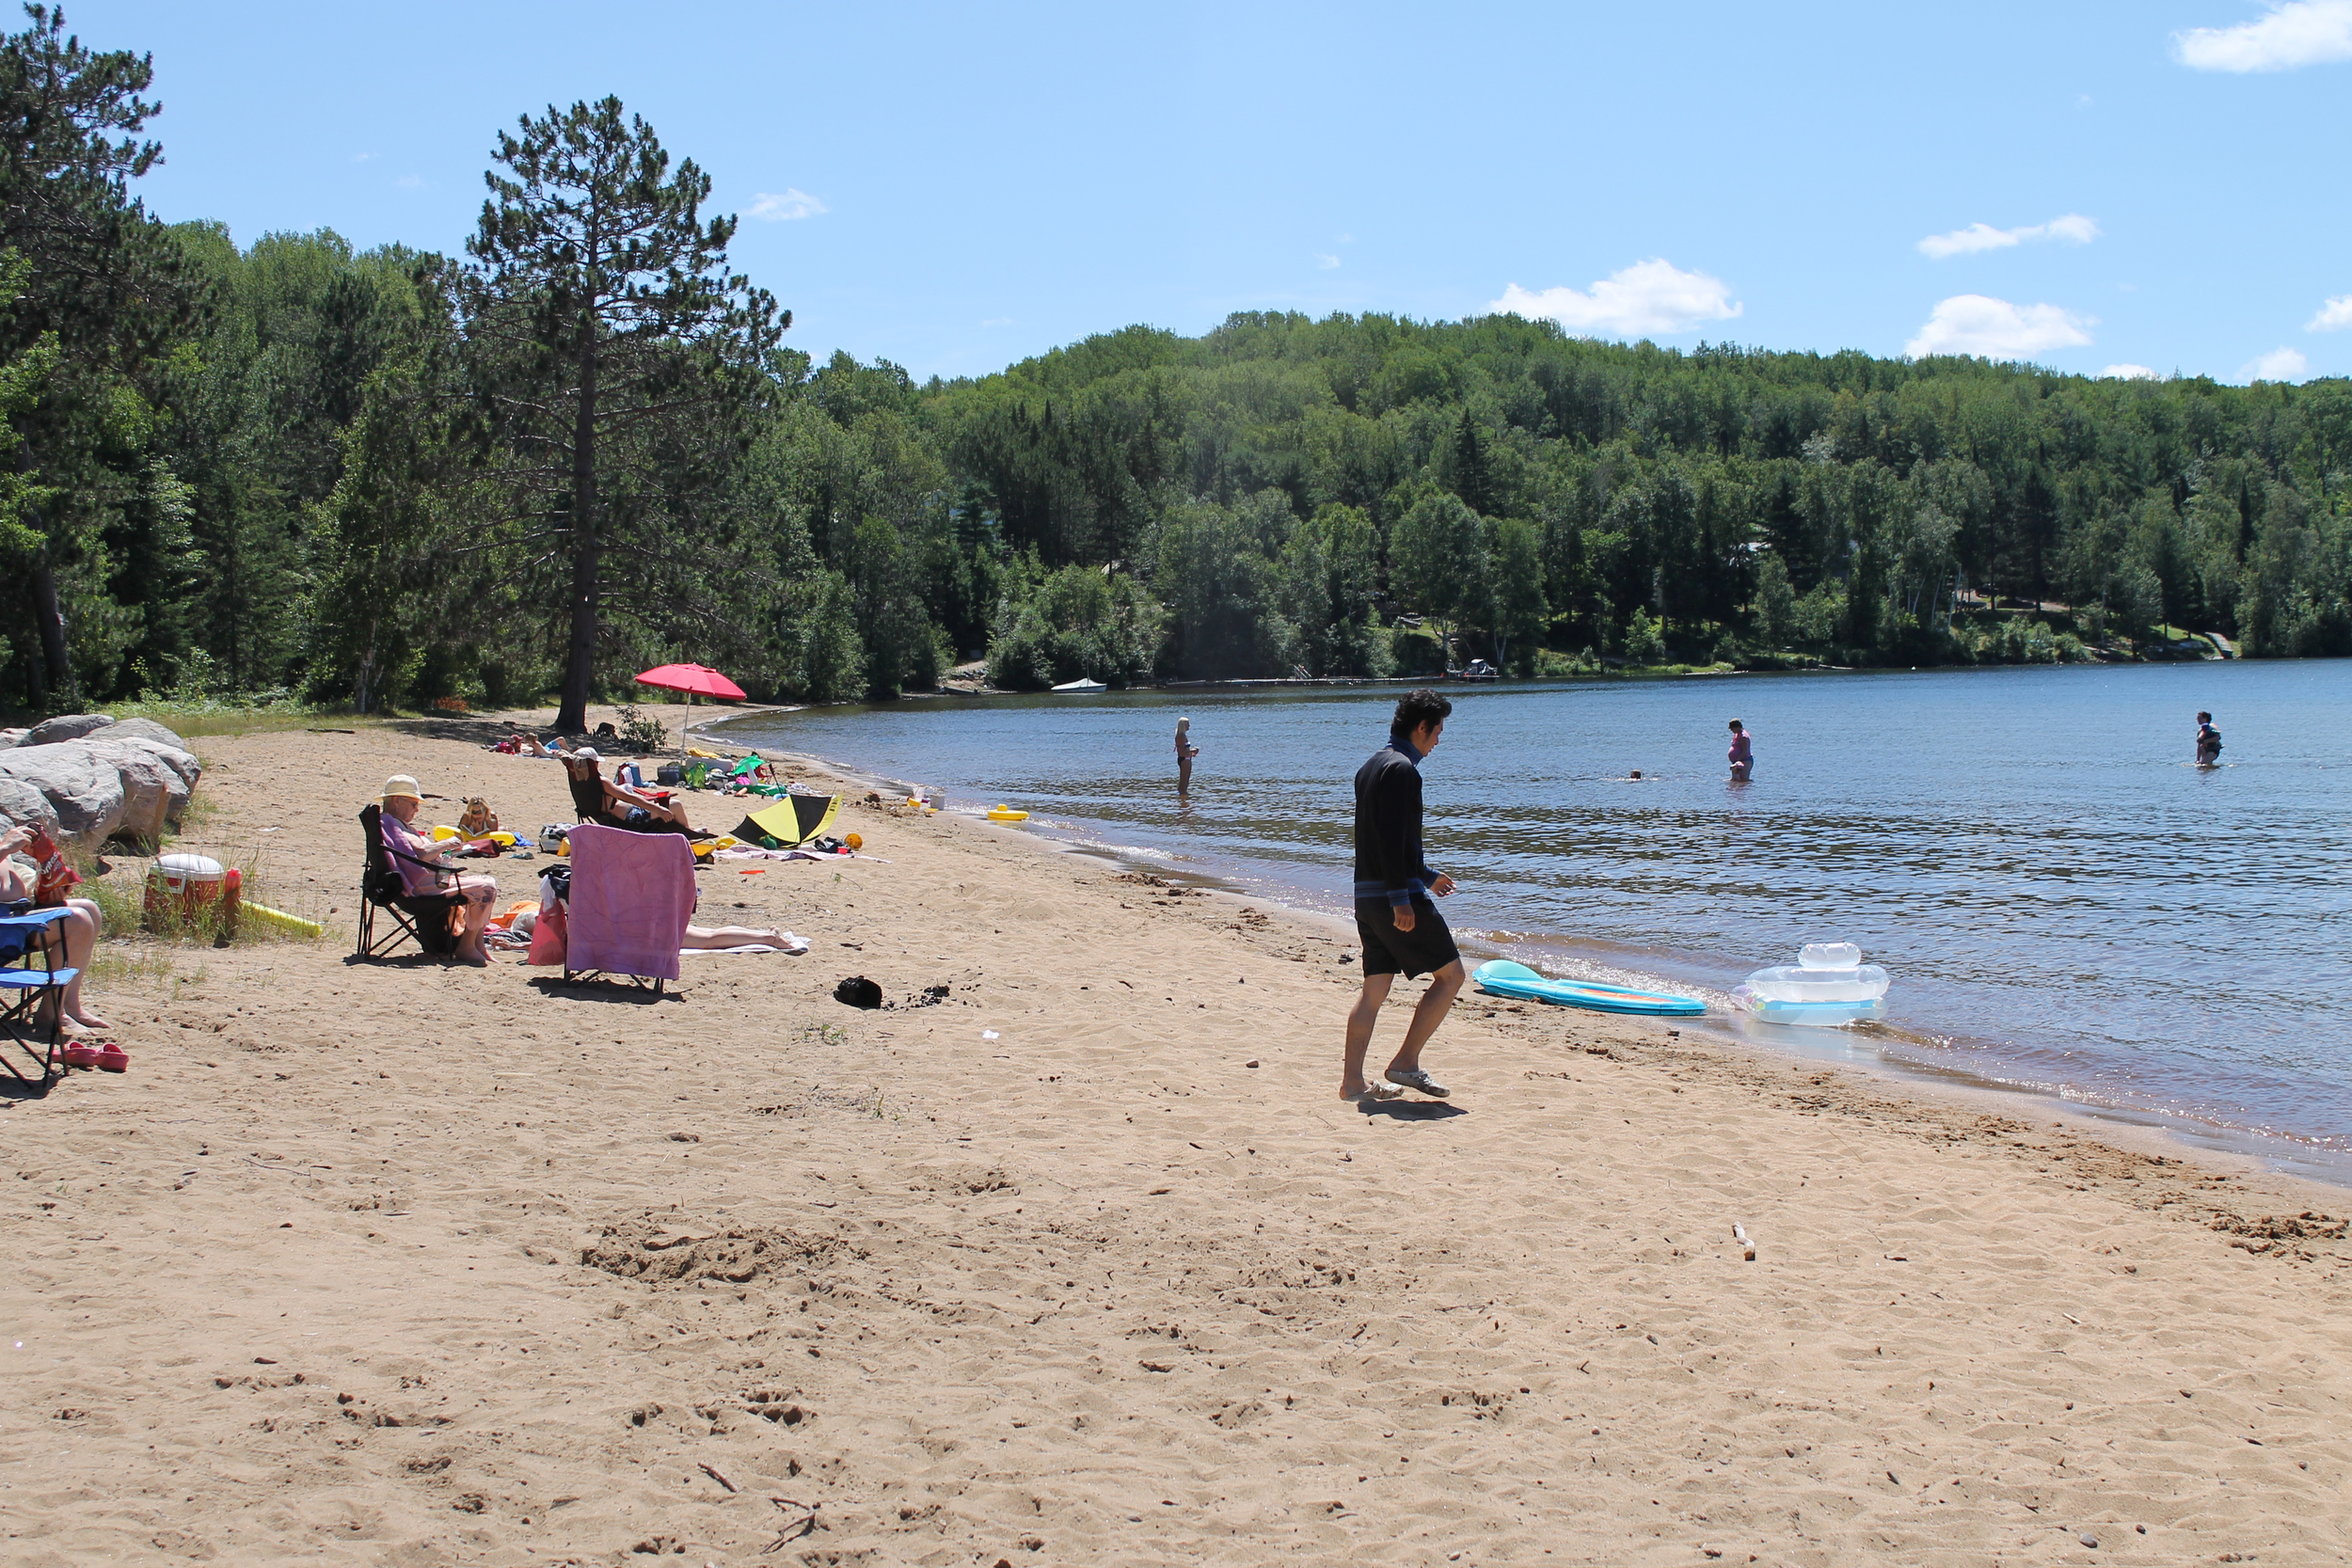 The beaches of North Hastings, by Michelle Annette Tremblay. Photo of Papineau Beach by Michelle Annette Tremblay